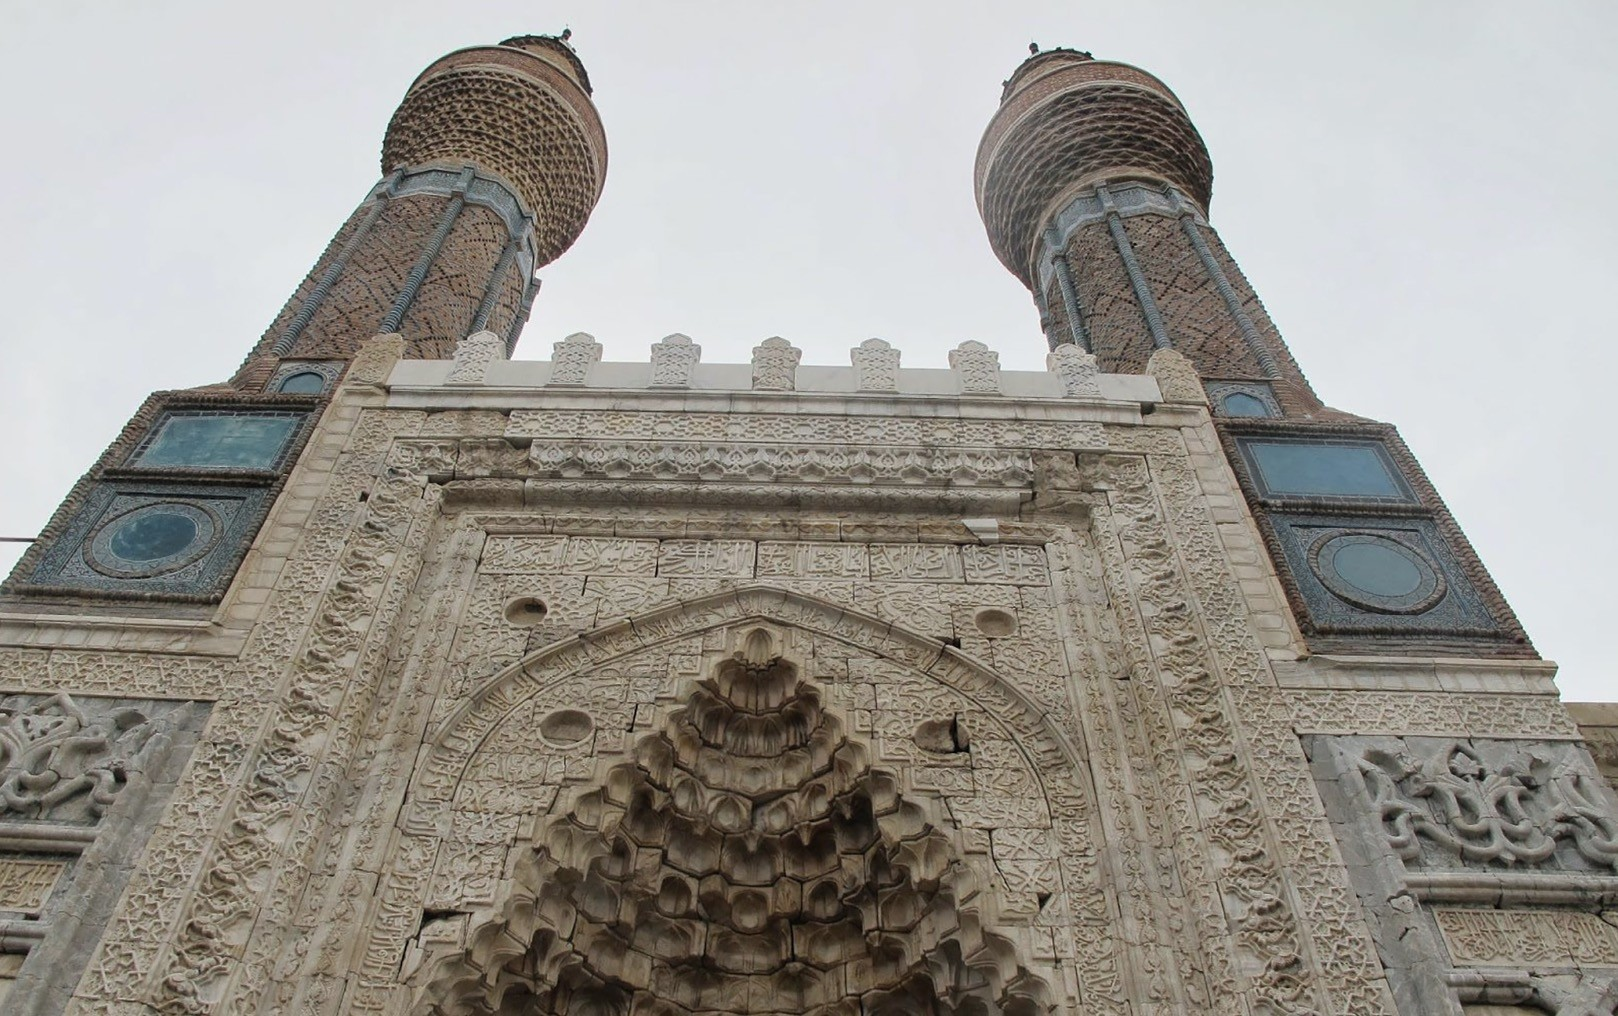 Gu00f6kmedrese (Blue  Madrasah) takes its name from its blue tiles.